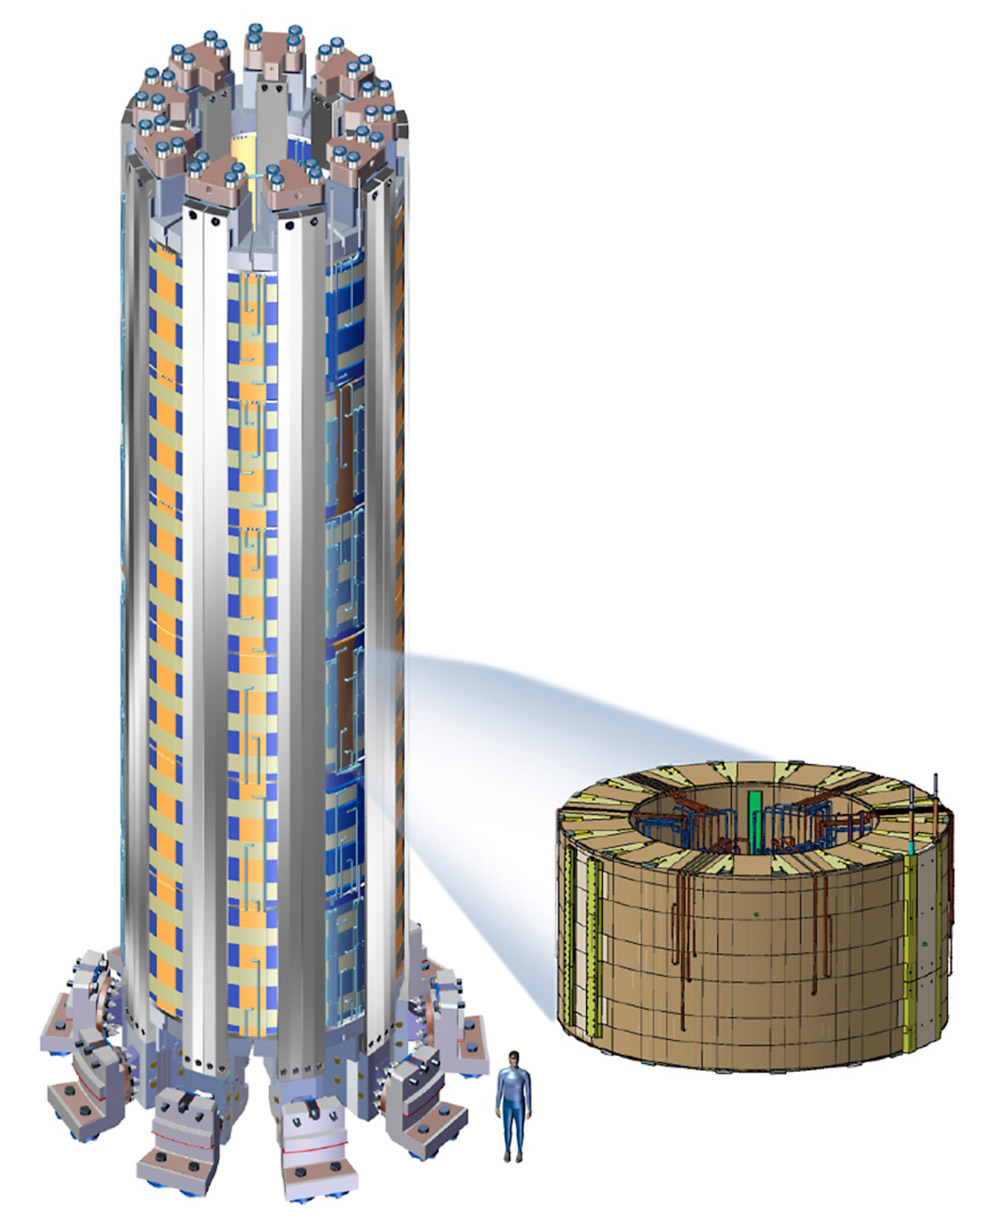 ITER Central Solenoid consists of 6 modules and a structure with an overall height of 59 feet